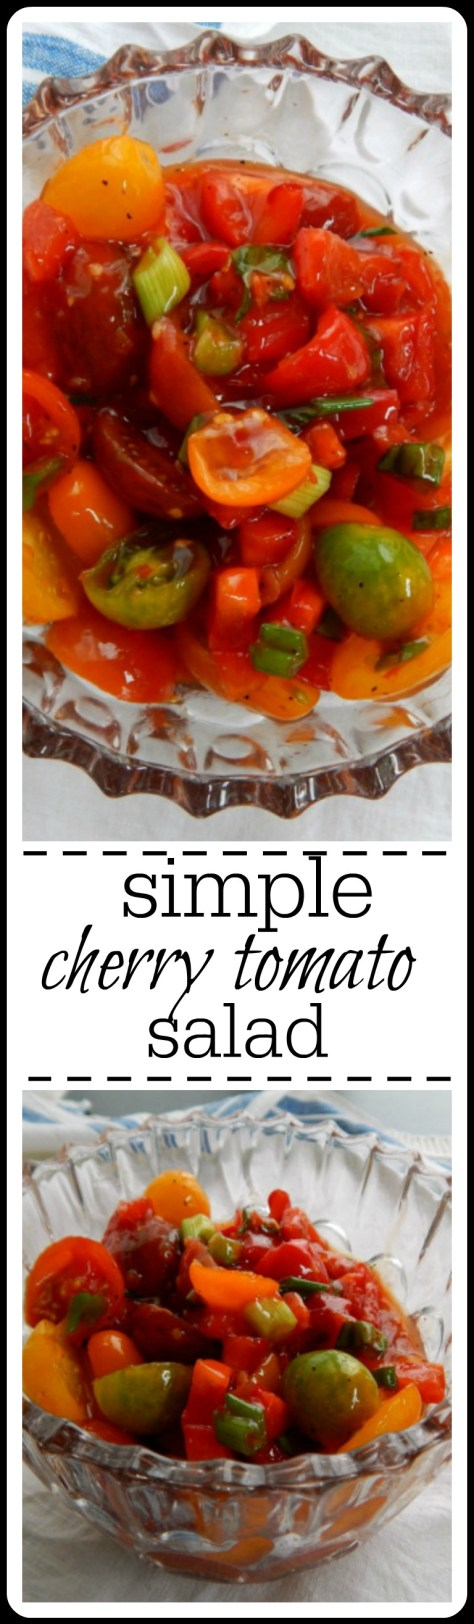 Very simple way to dress up cherry tomatoes (or chunks of any tomato!)